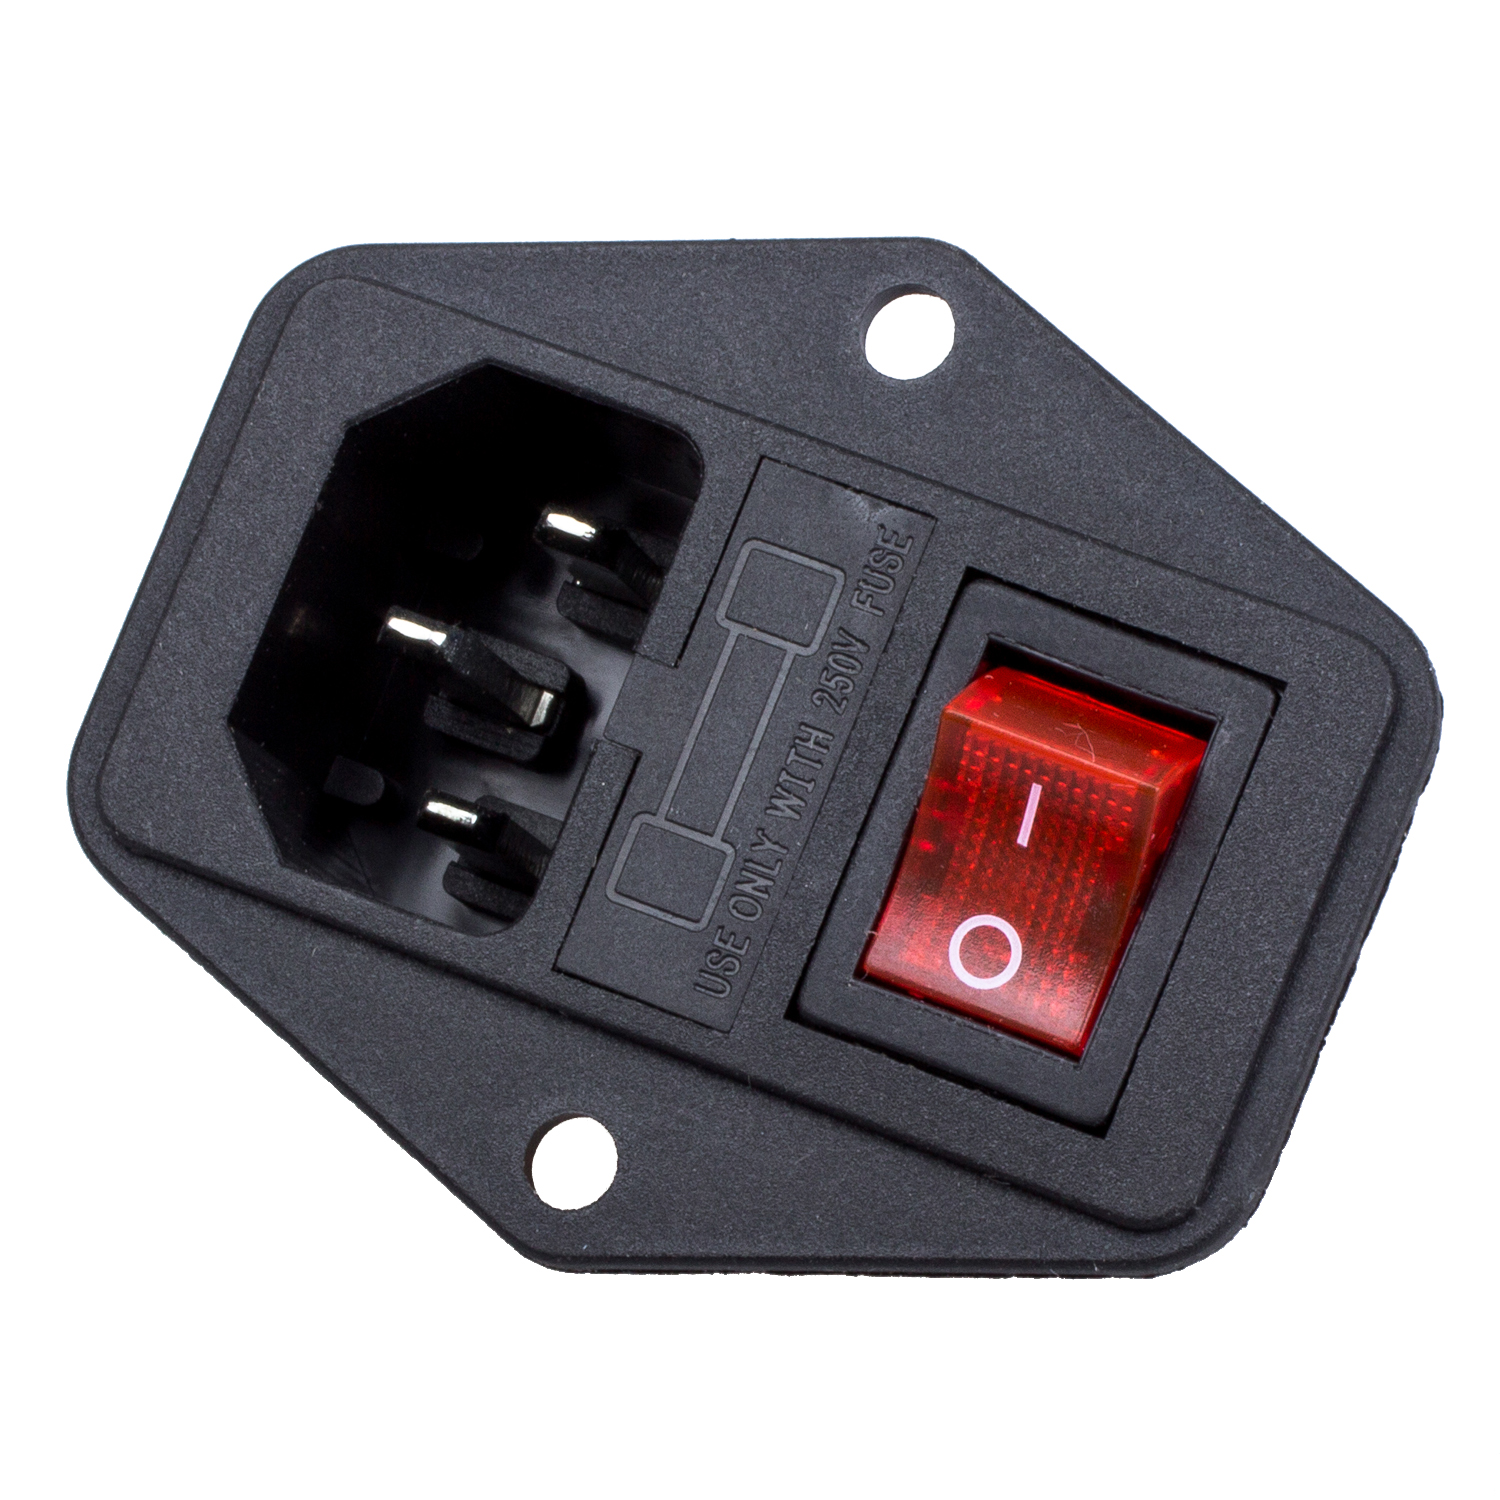 3 pin iec320 c14 inlet module plug fuse switch male power